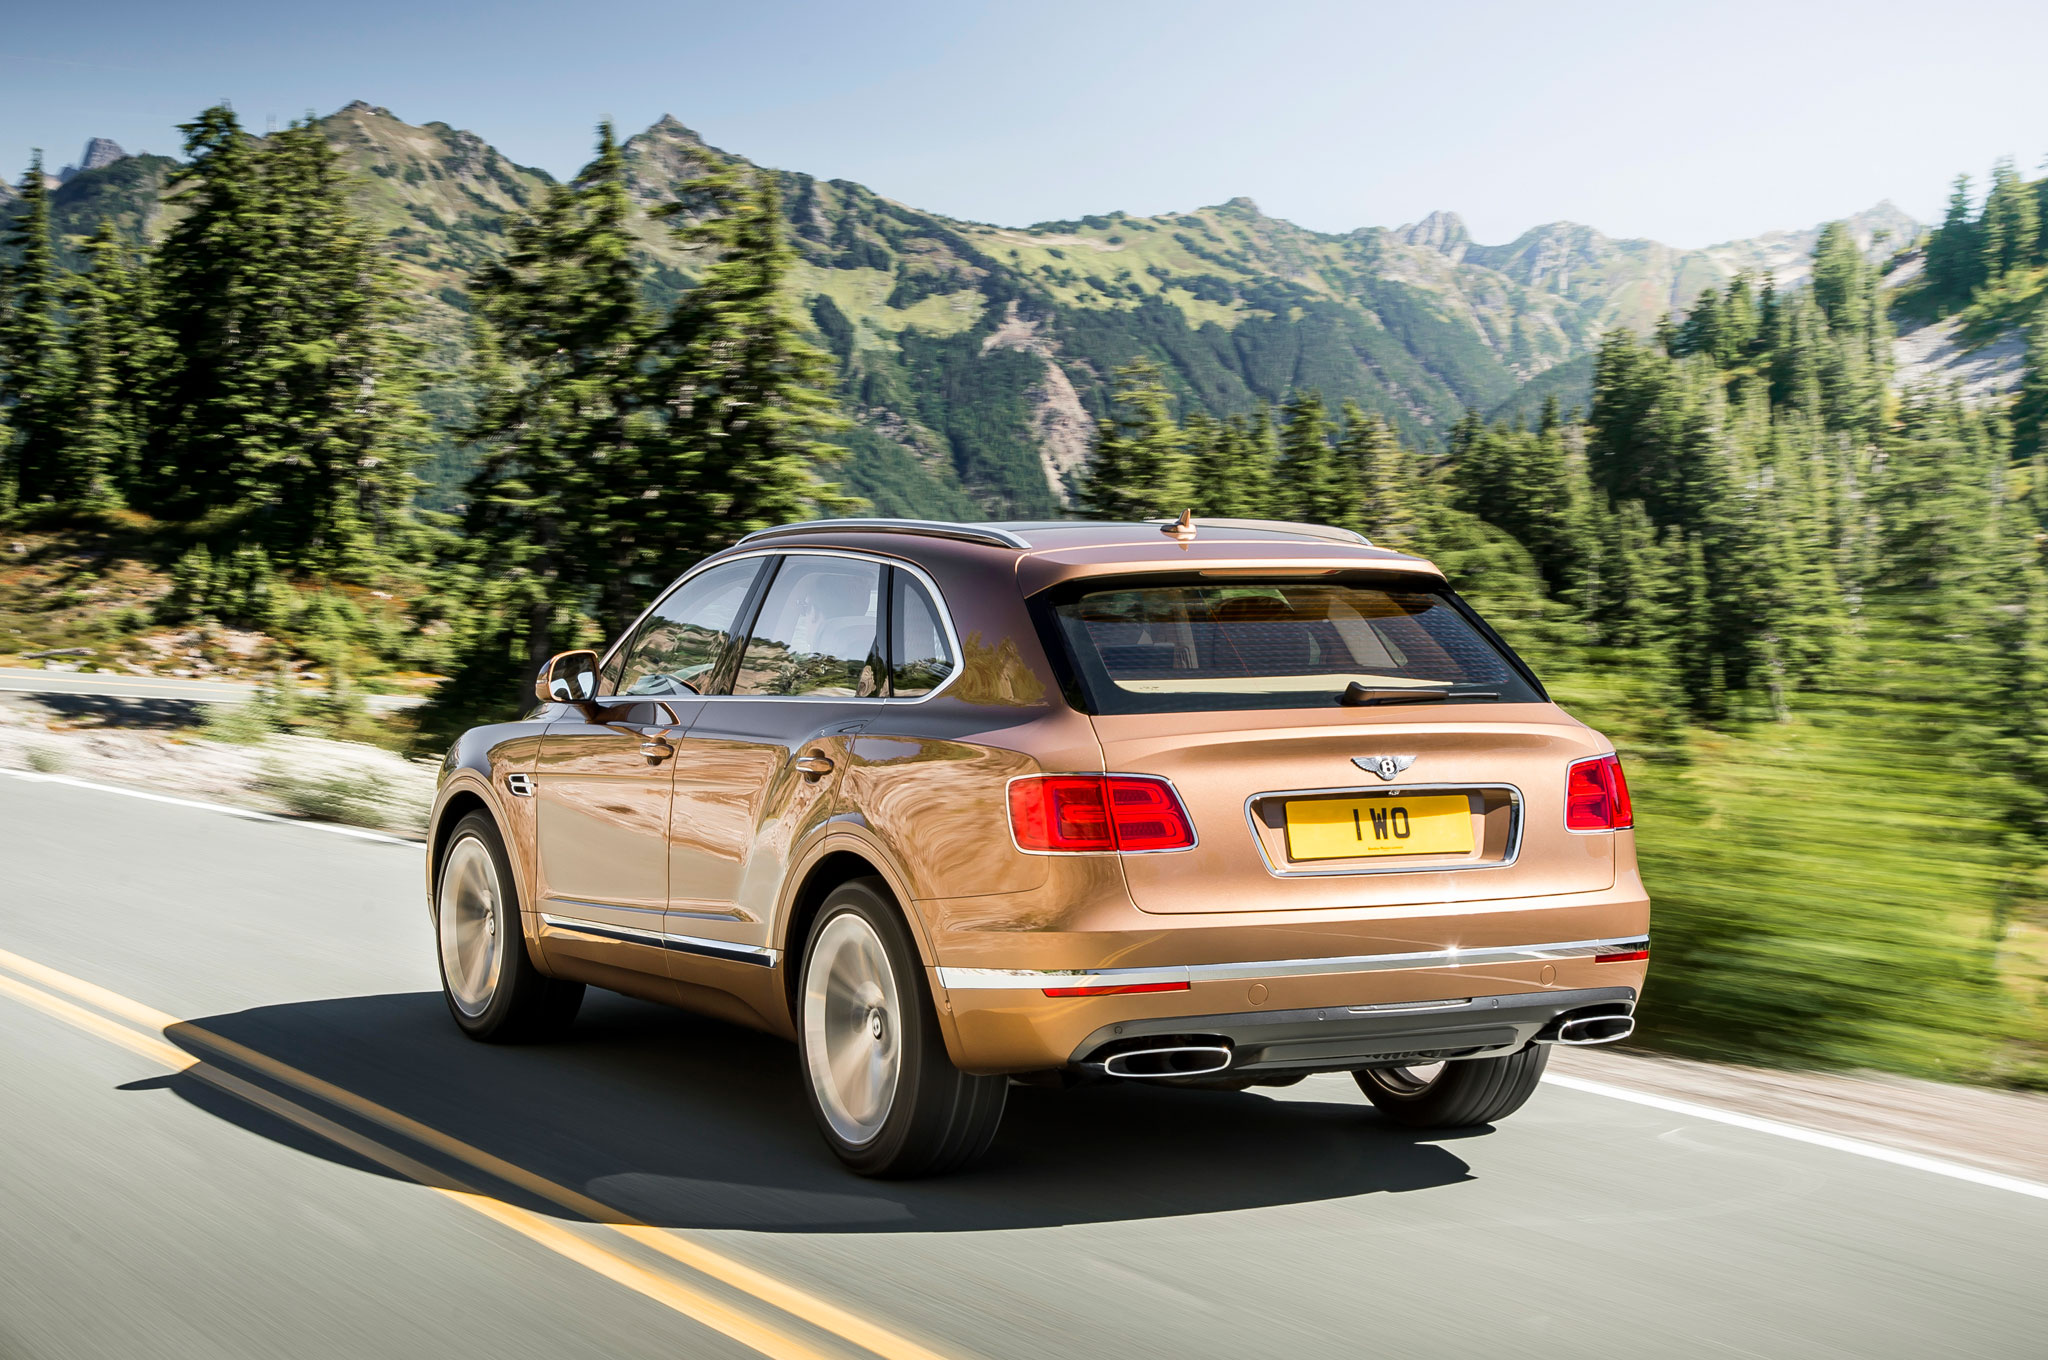 2017 Bentley Bentayga Rear Side View